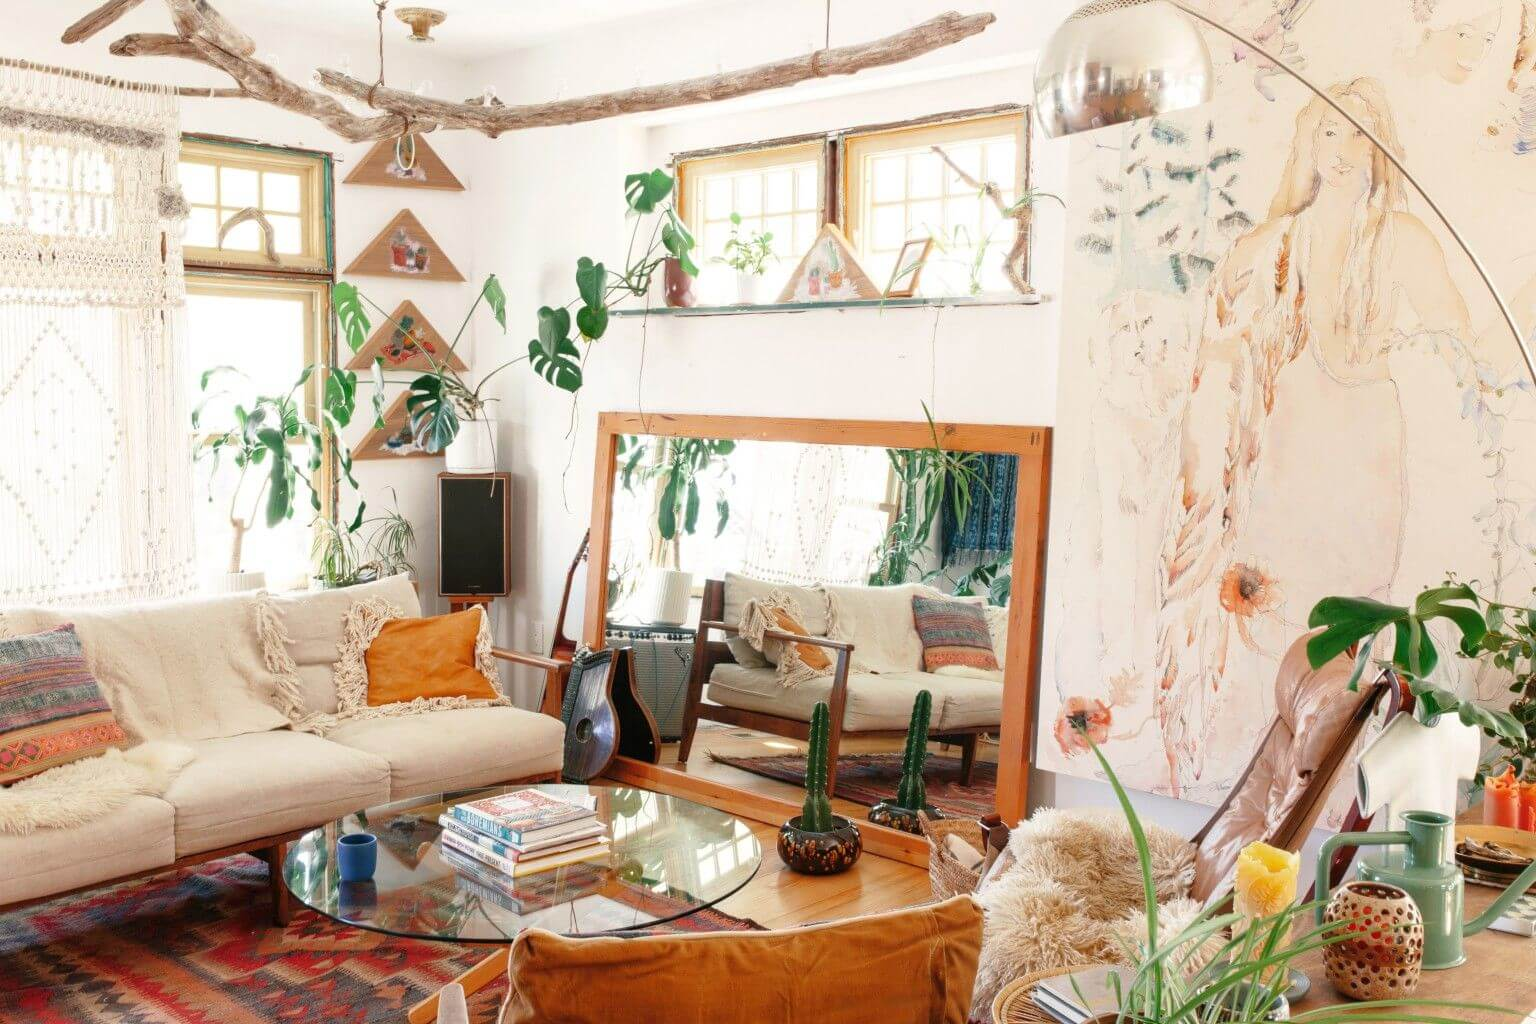 Tips to Pull-off Bohemian Interior Design With an Ease